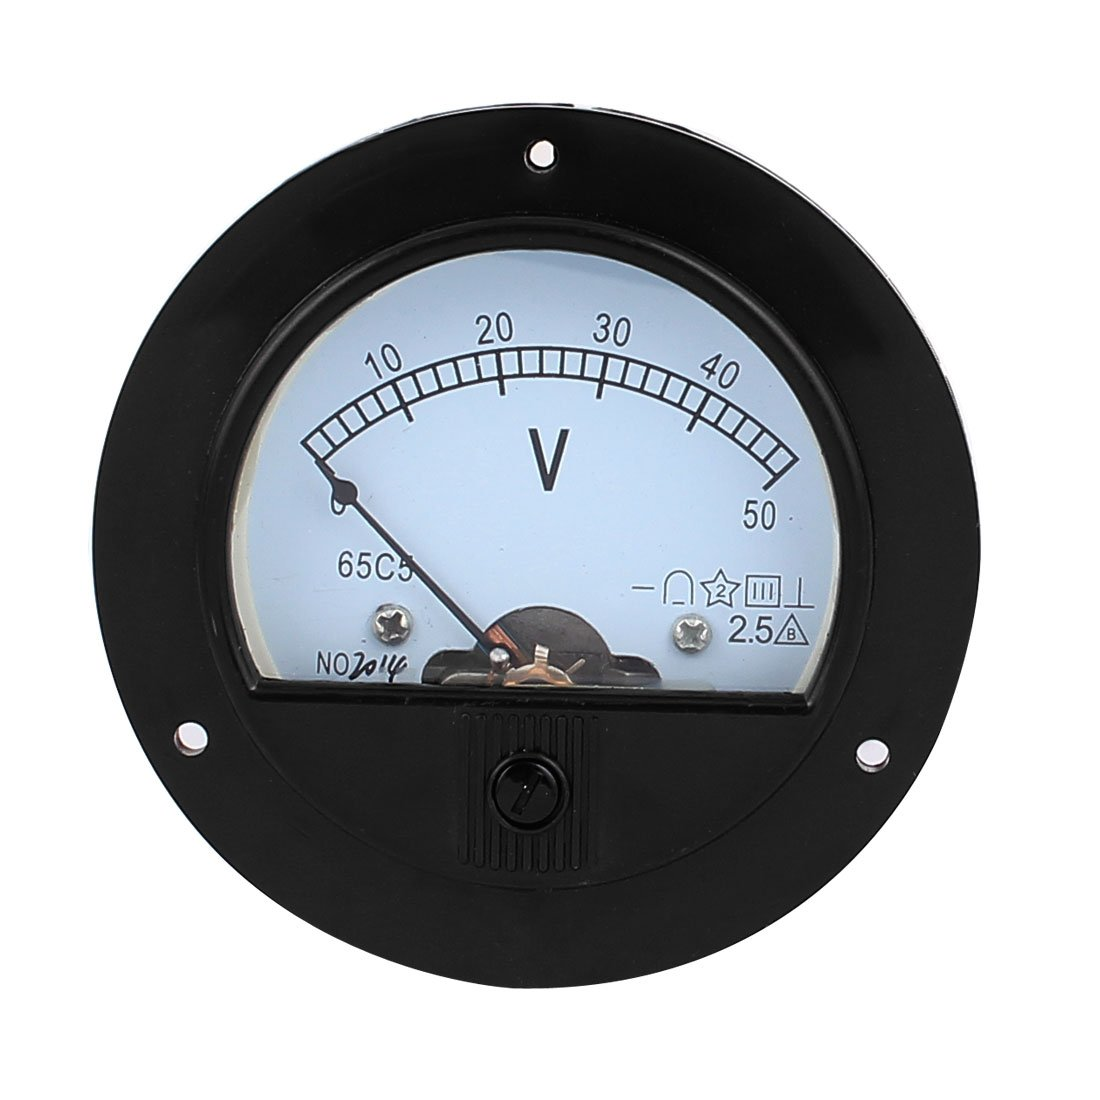 Uxcell a15102300ux0530 DC 50V Analog Panel Measuring Gauge Class 2.5 Voltage Meter Voltmeter